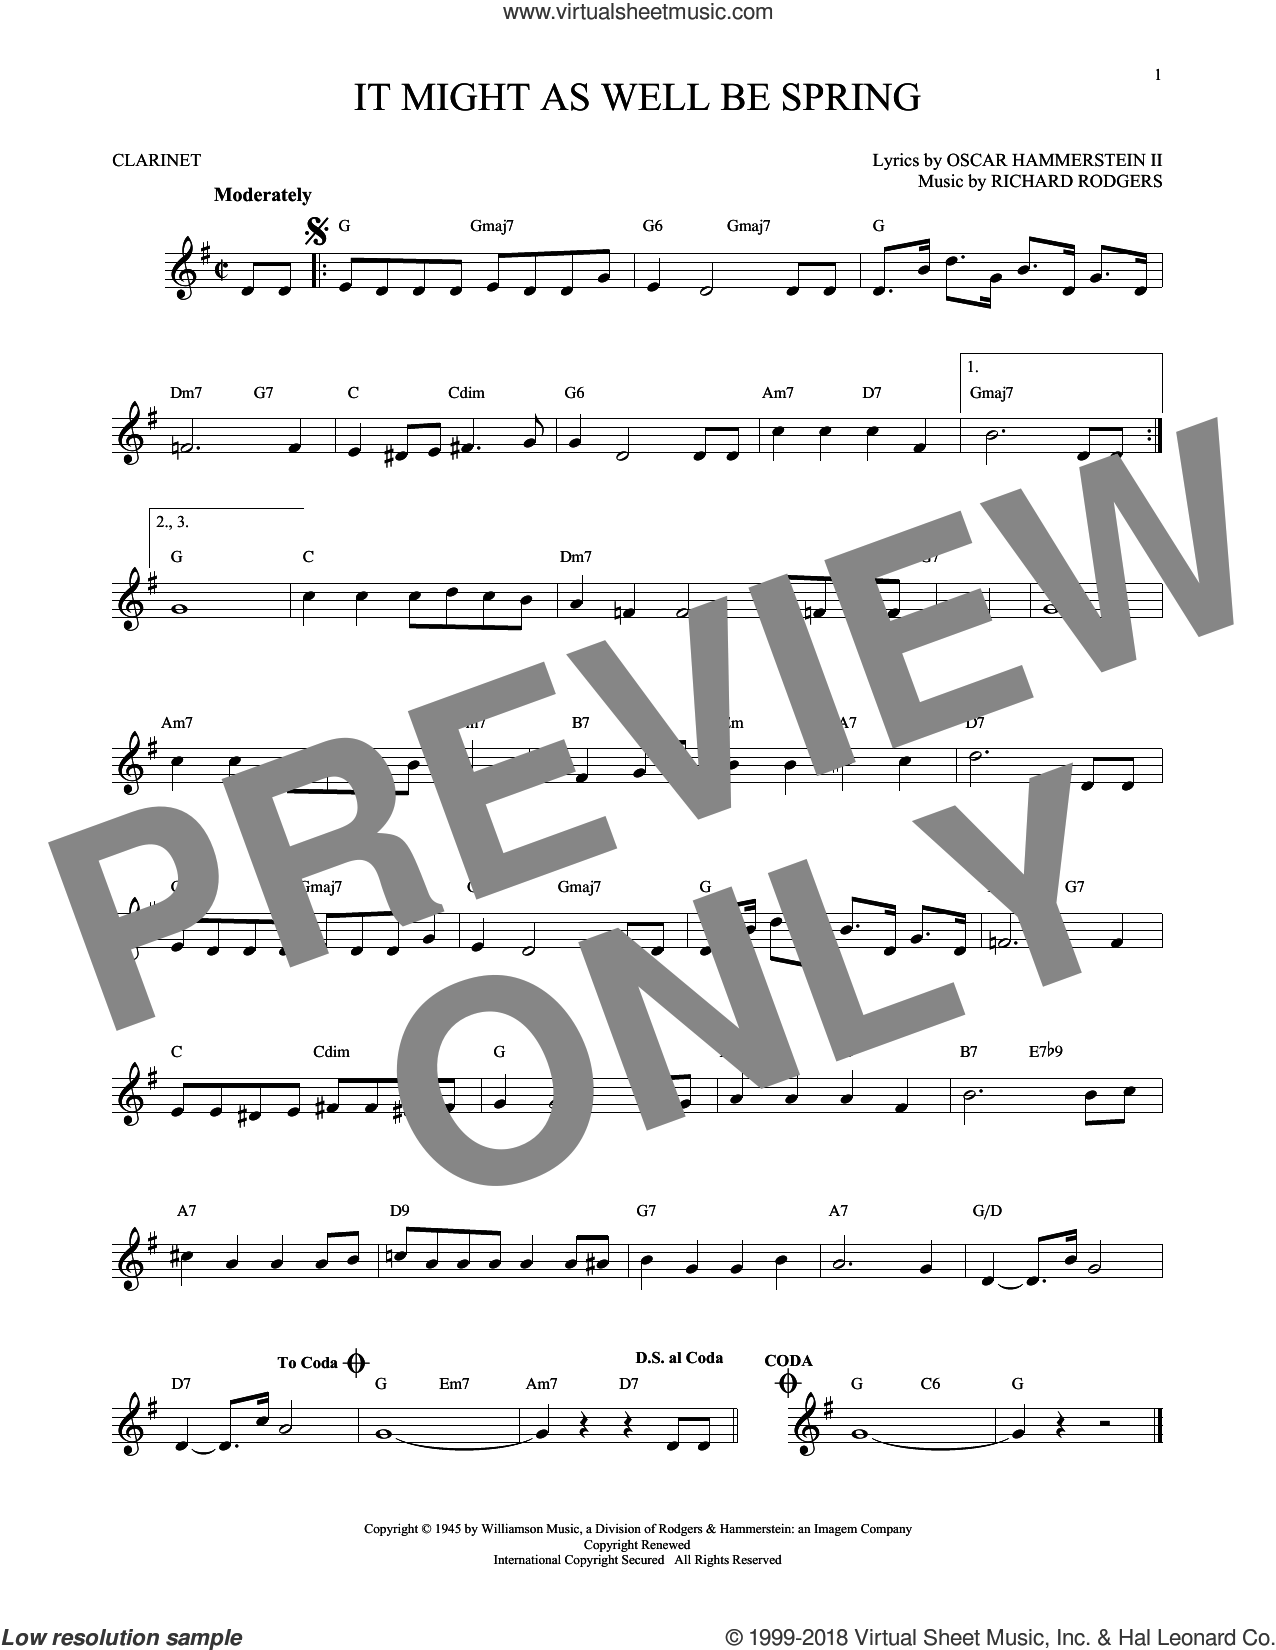 It Might As Well Be Spring sheet music for clarinet solo by Rodgers & Hammerstein, Oscar II Hammerstein and Richard Rodgers, intermediate skill level